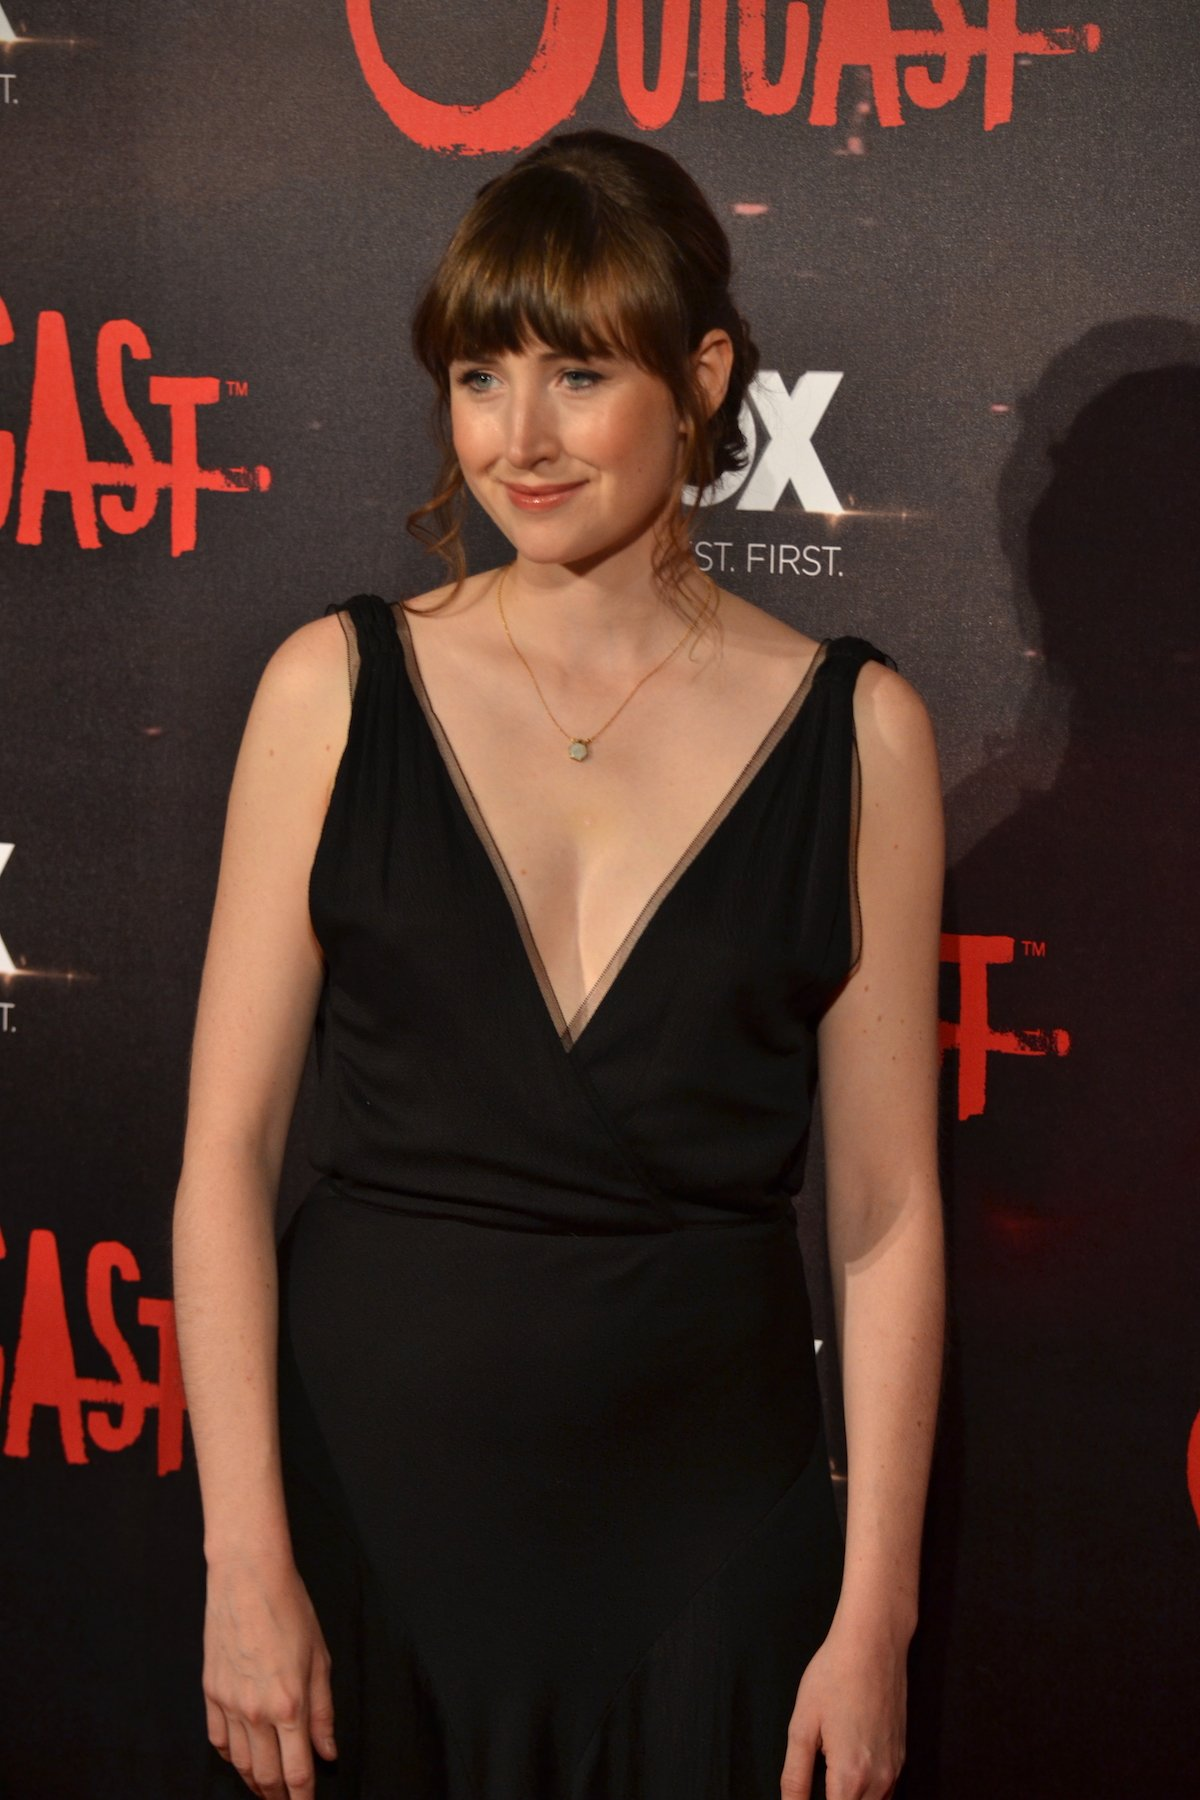 Outcast: uno scatto di Kate Lyn Sheil sul red carpet della premiere europea